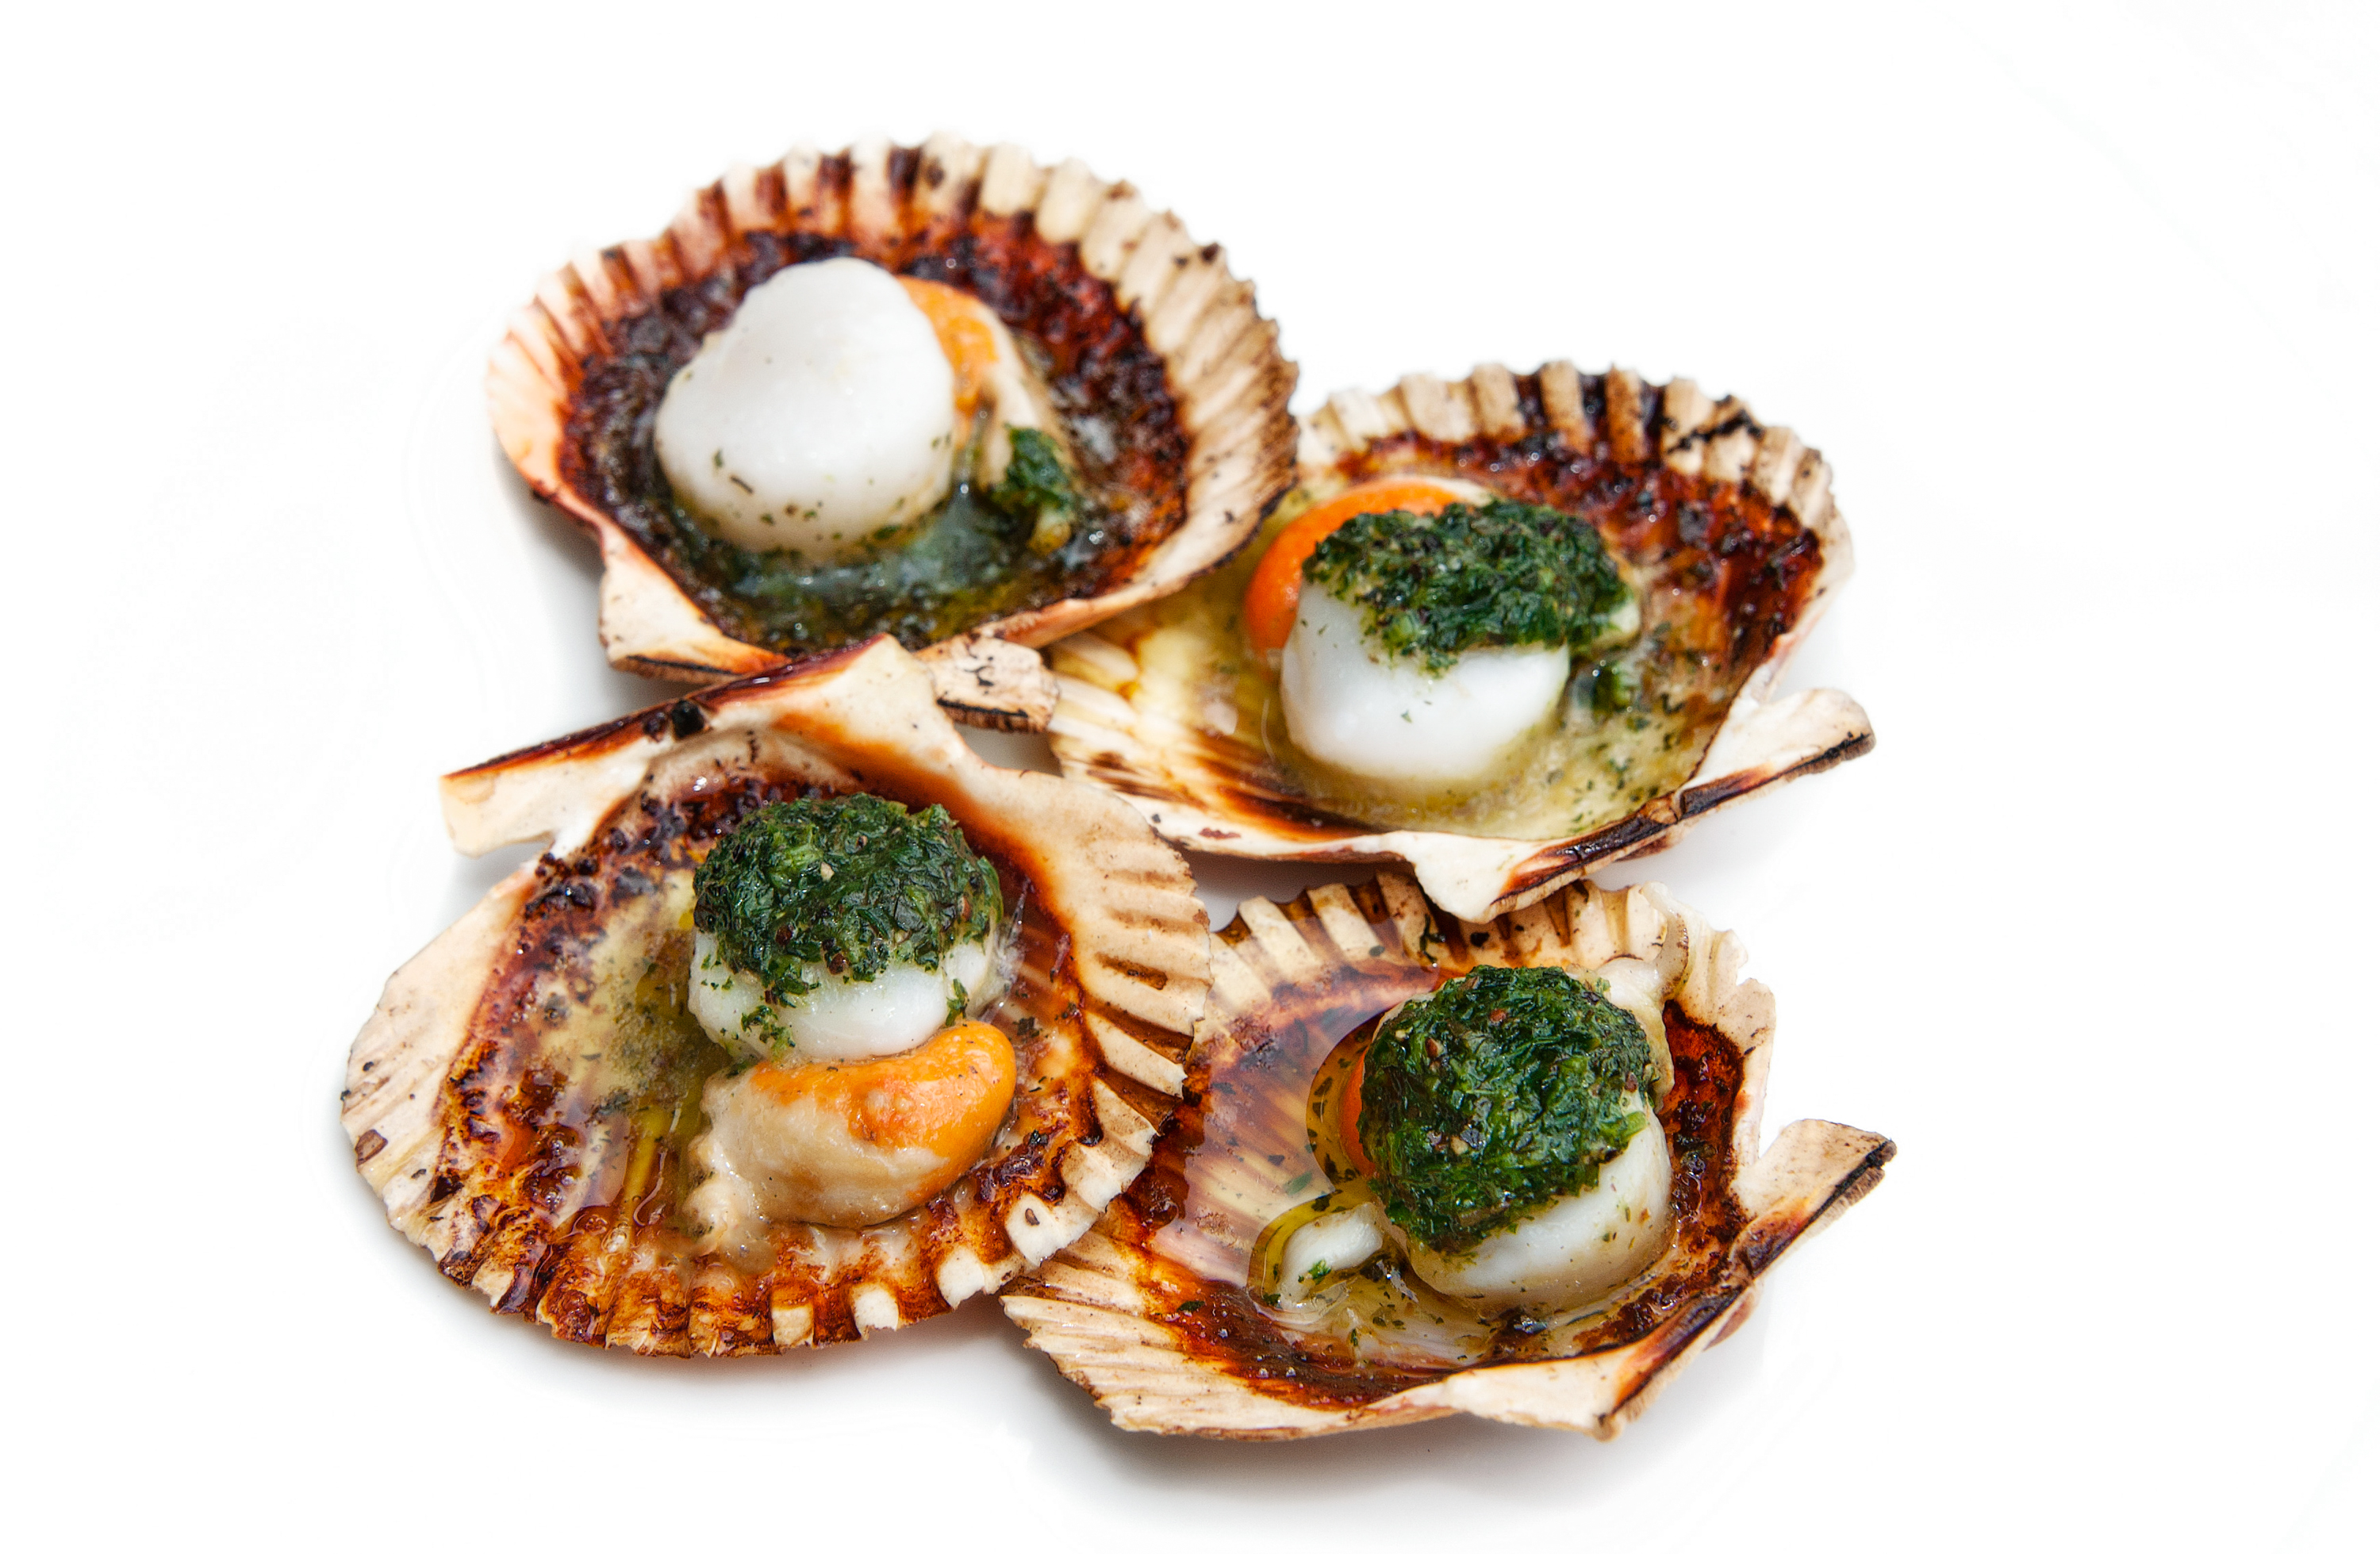 Scallops - food photographer Dorset